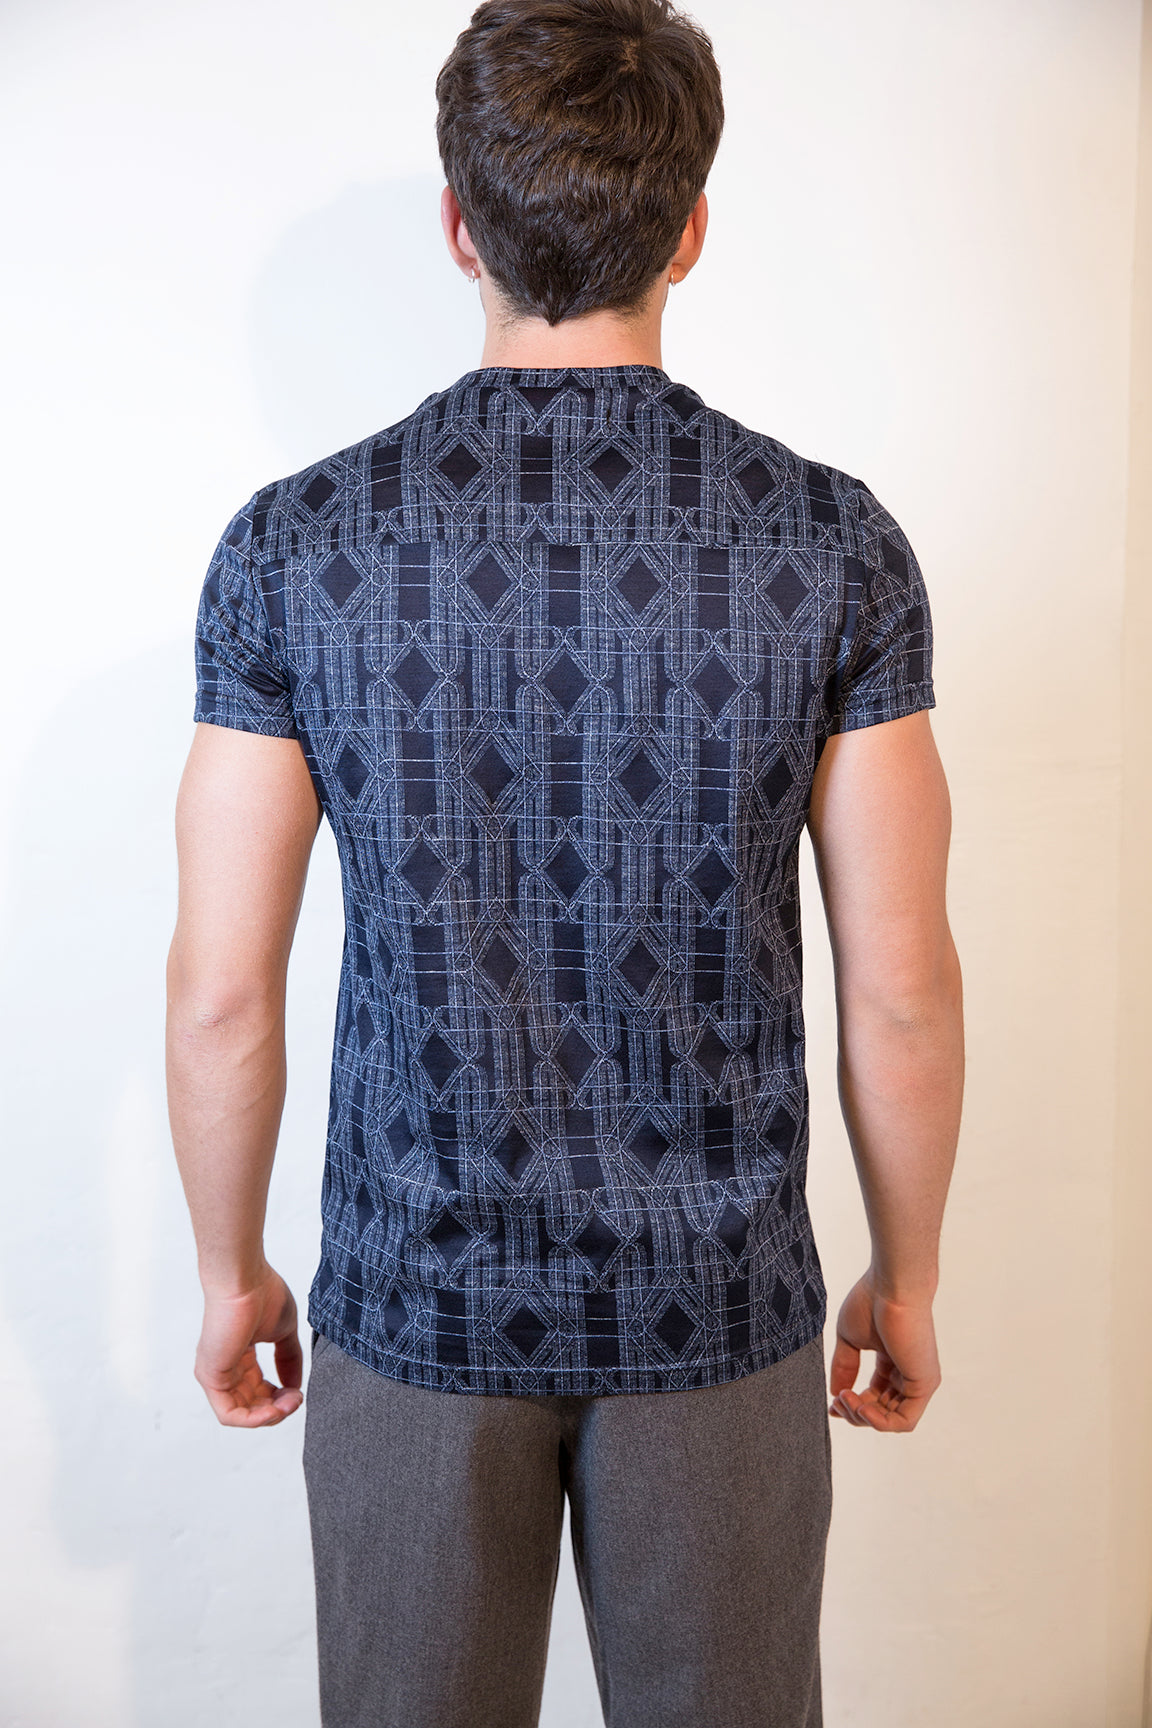 Sébastien Blondin haut top tee-shirt motifs patterns vitraux stained glass windows marine navy sport sportswear chic été summer coton cotton maille knitwear créateur designer nouveau new basique basic mode fashion homme man men men's world